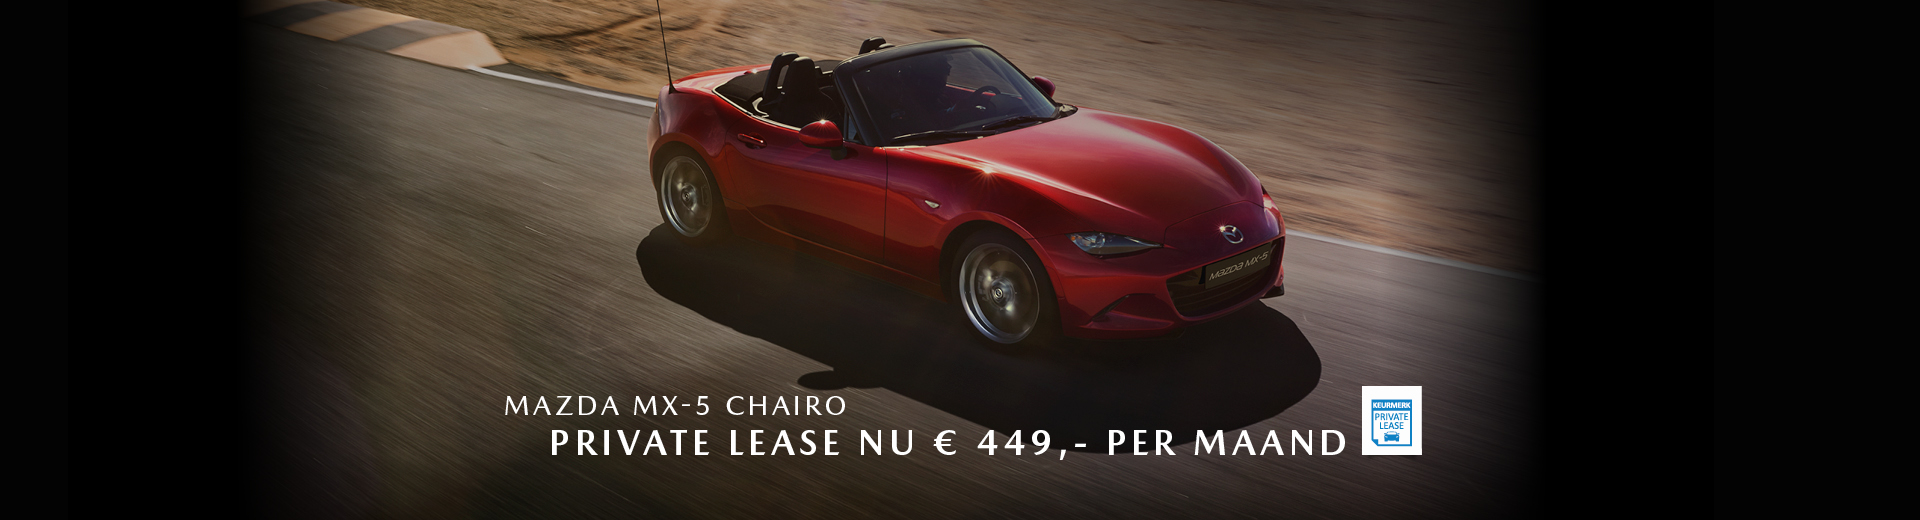 190139 Mazda Q2_Banner Mazda MX-5 Chairo_Private Lease_1920x520px [opmaak 01]